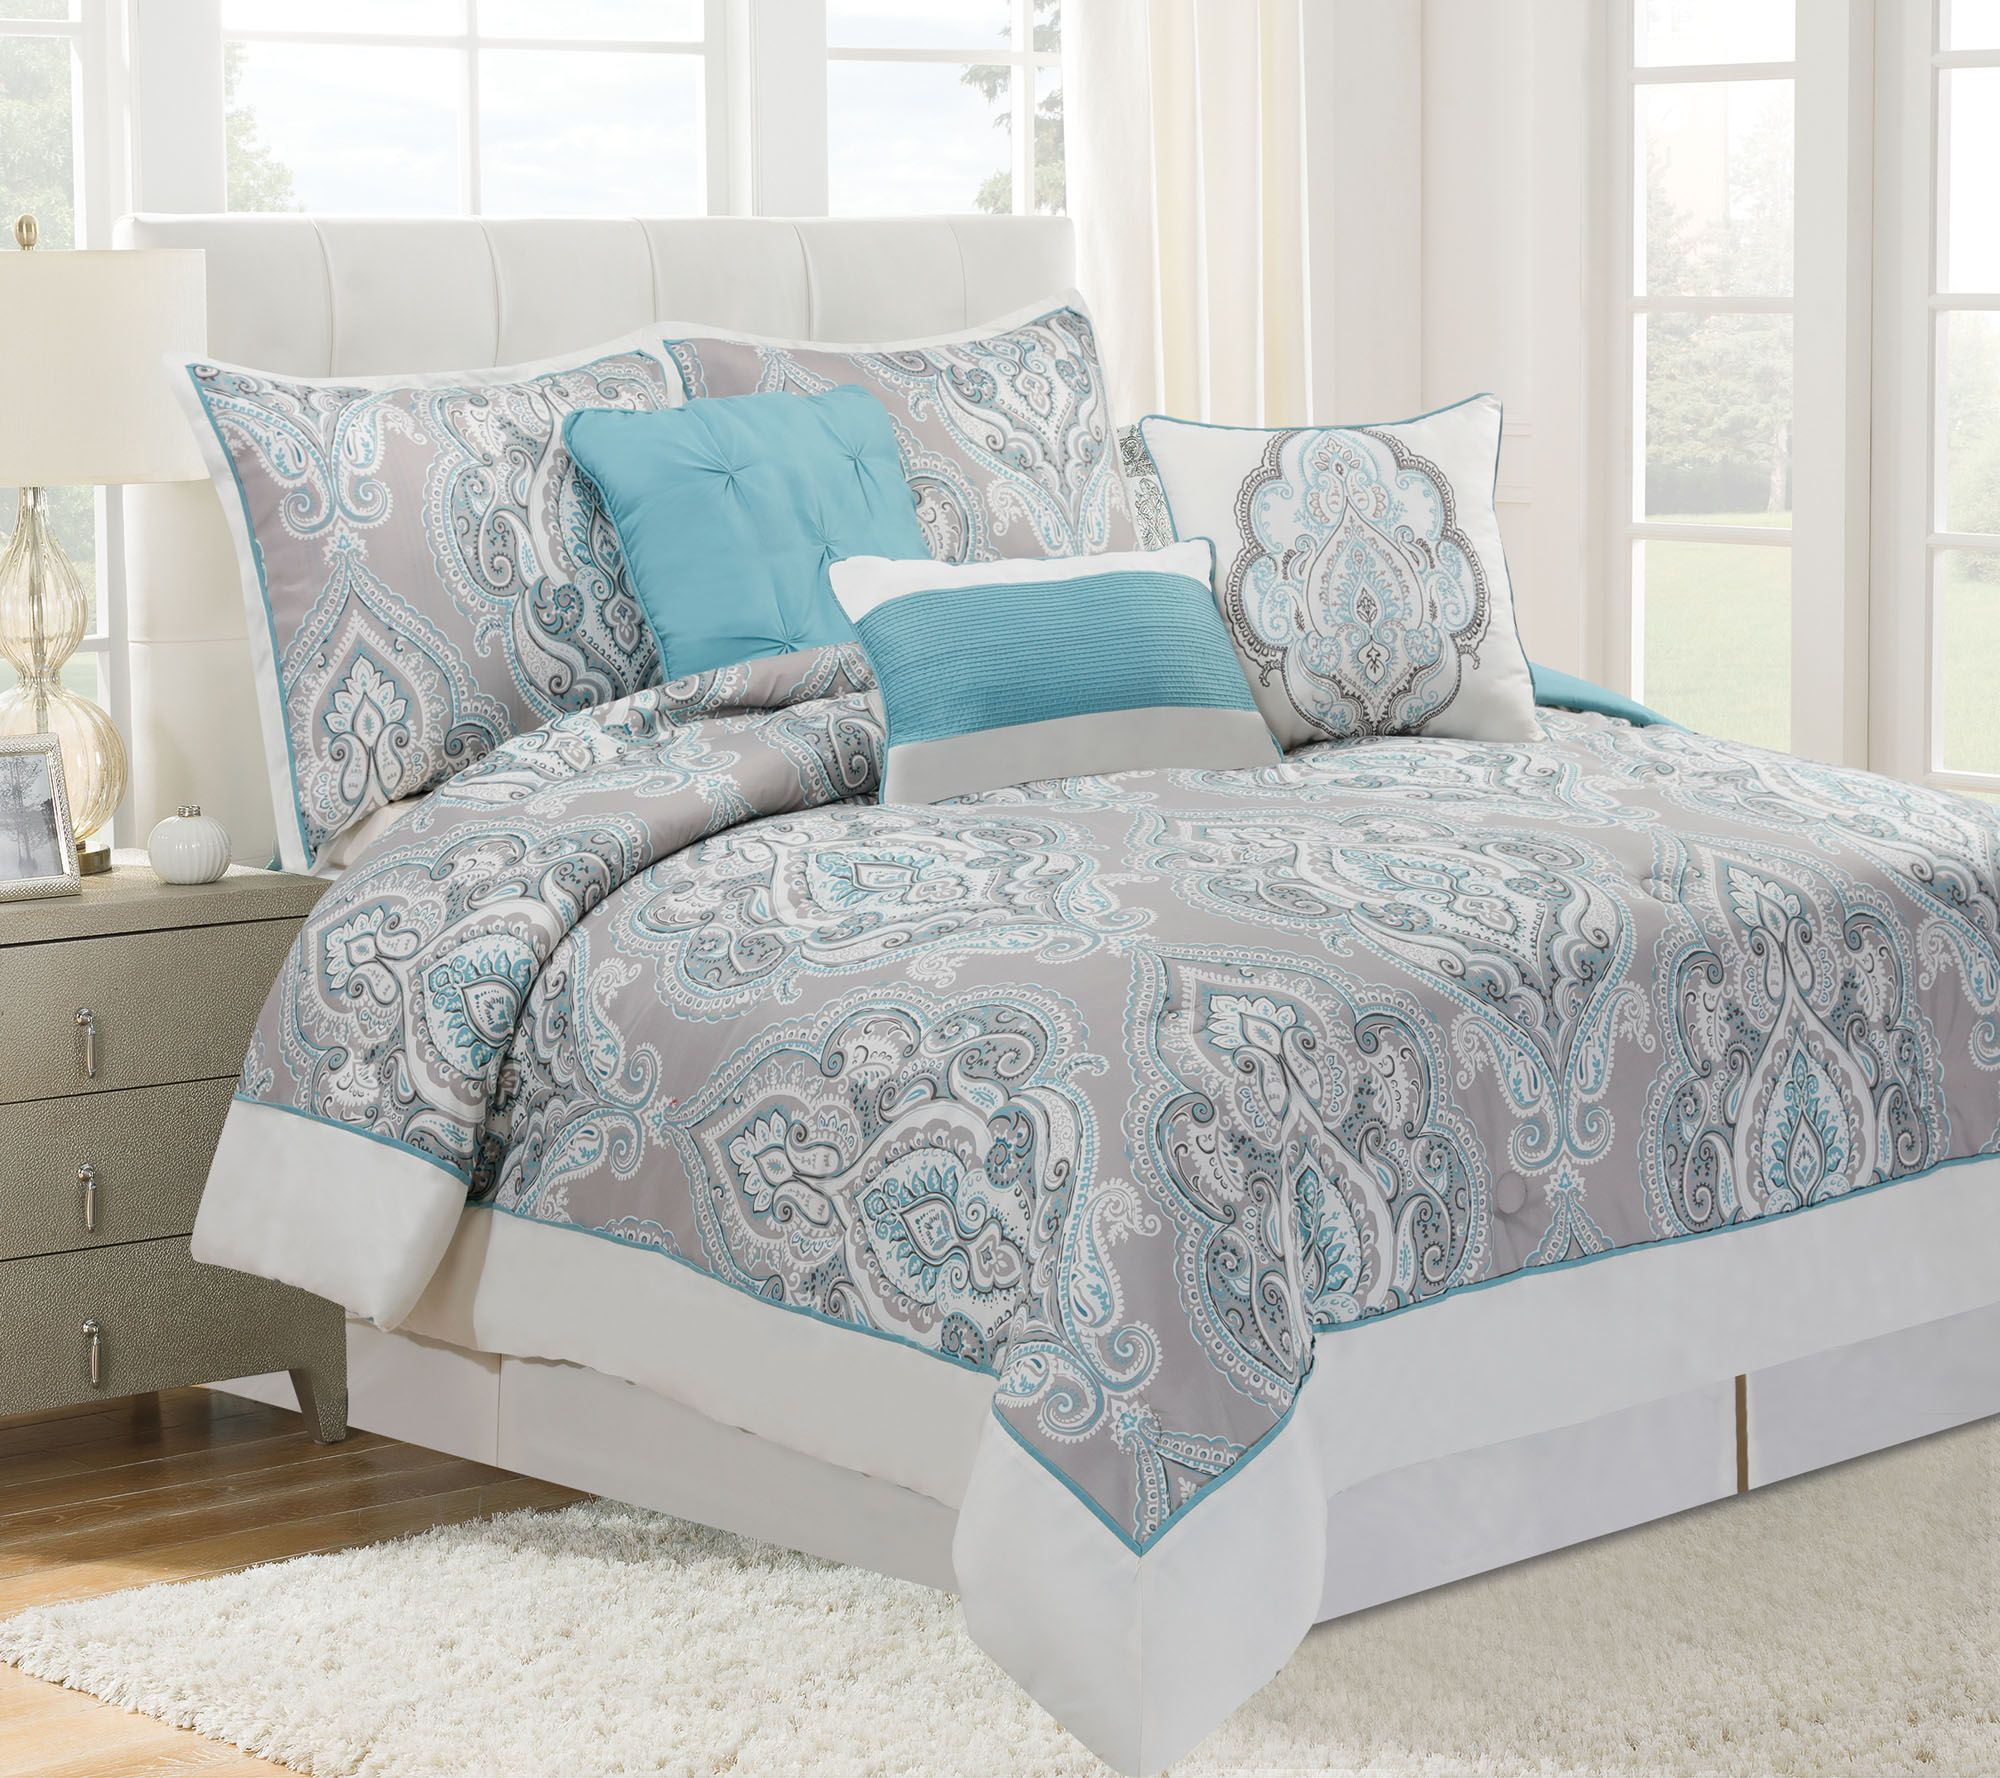 Home Reflections Damask forter Set Page 1 — QVC